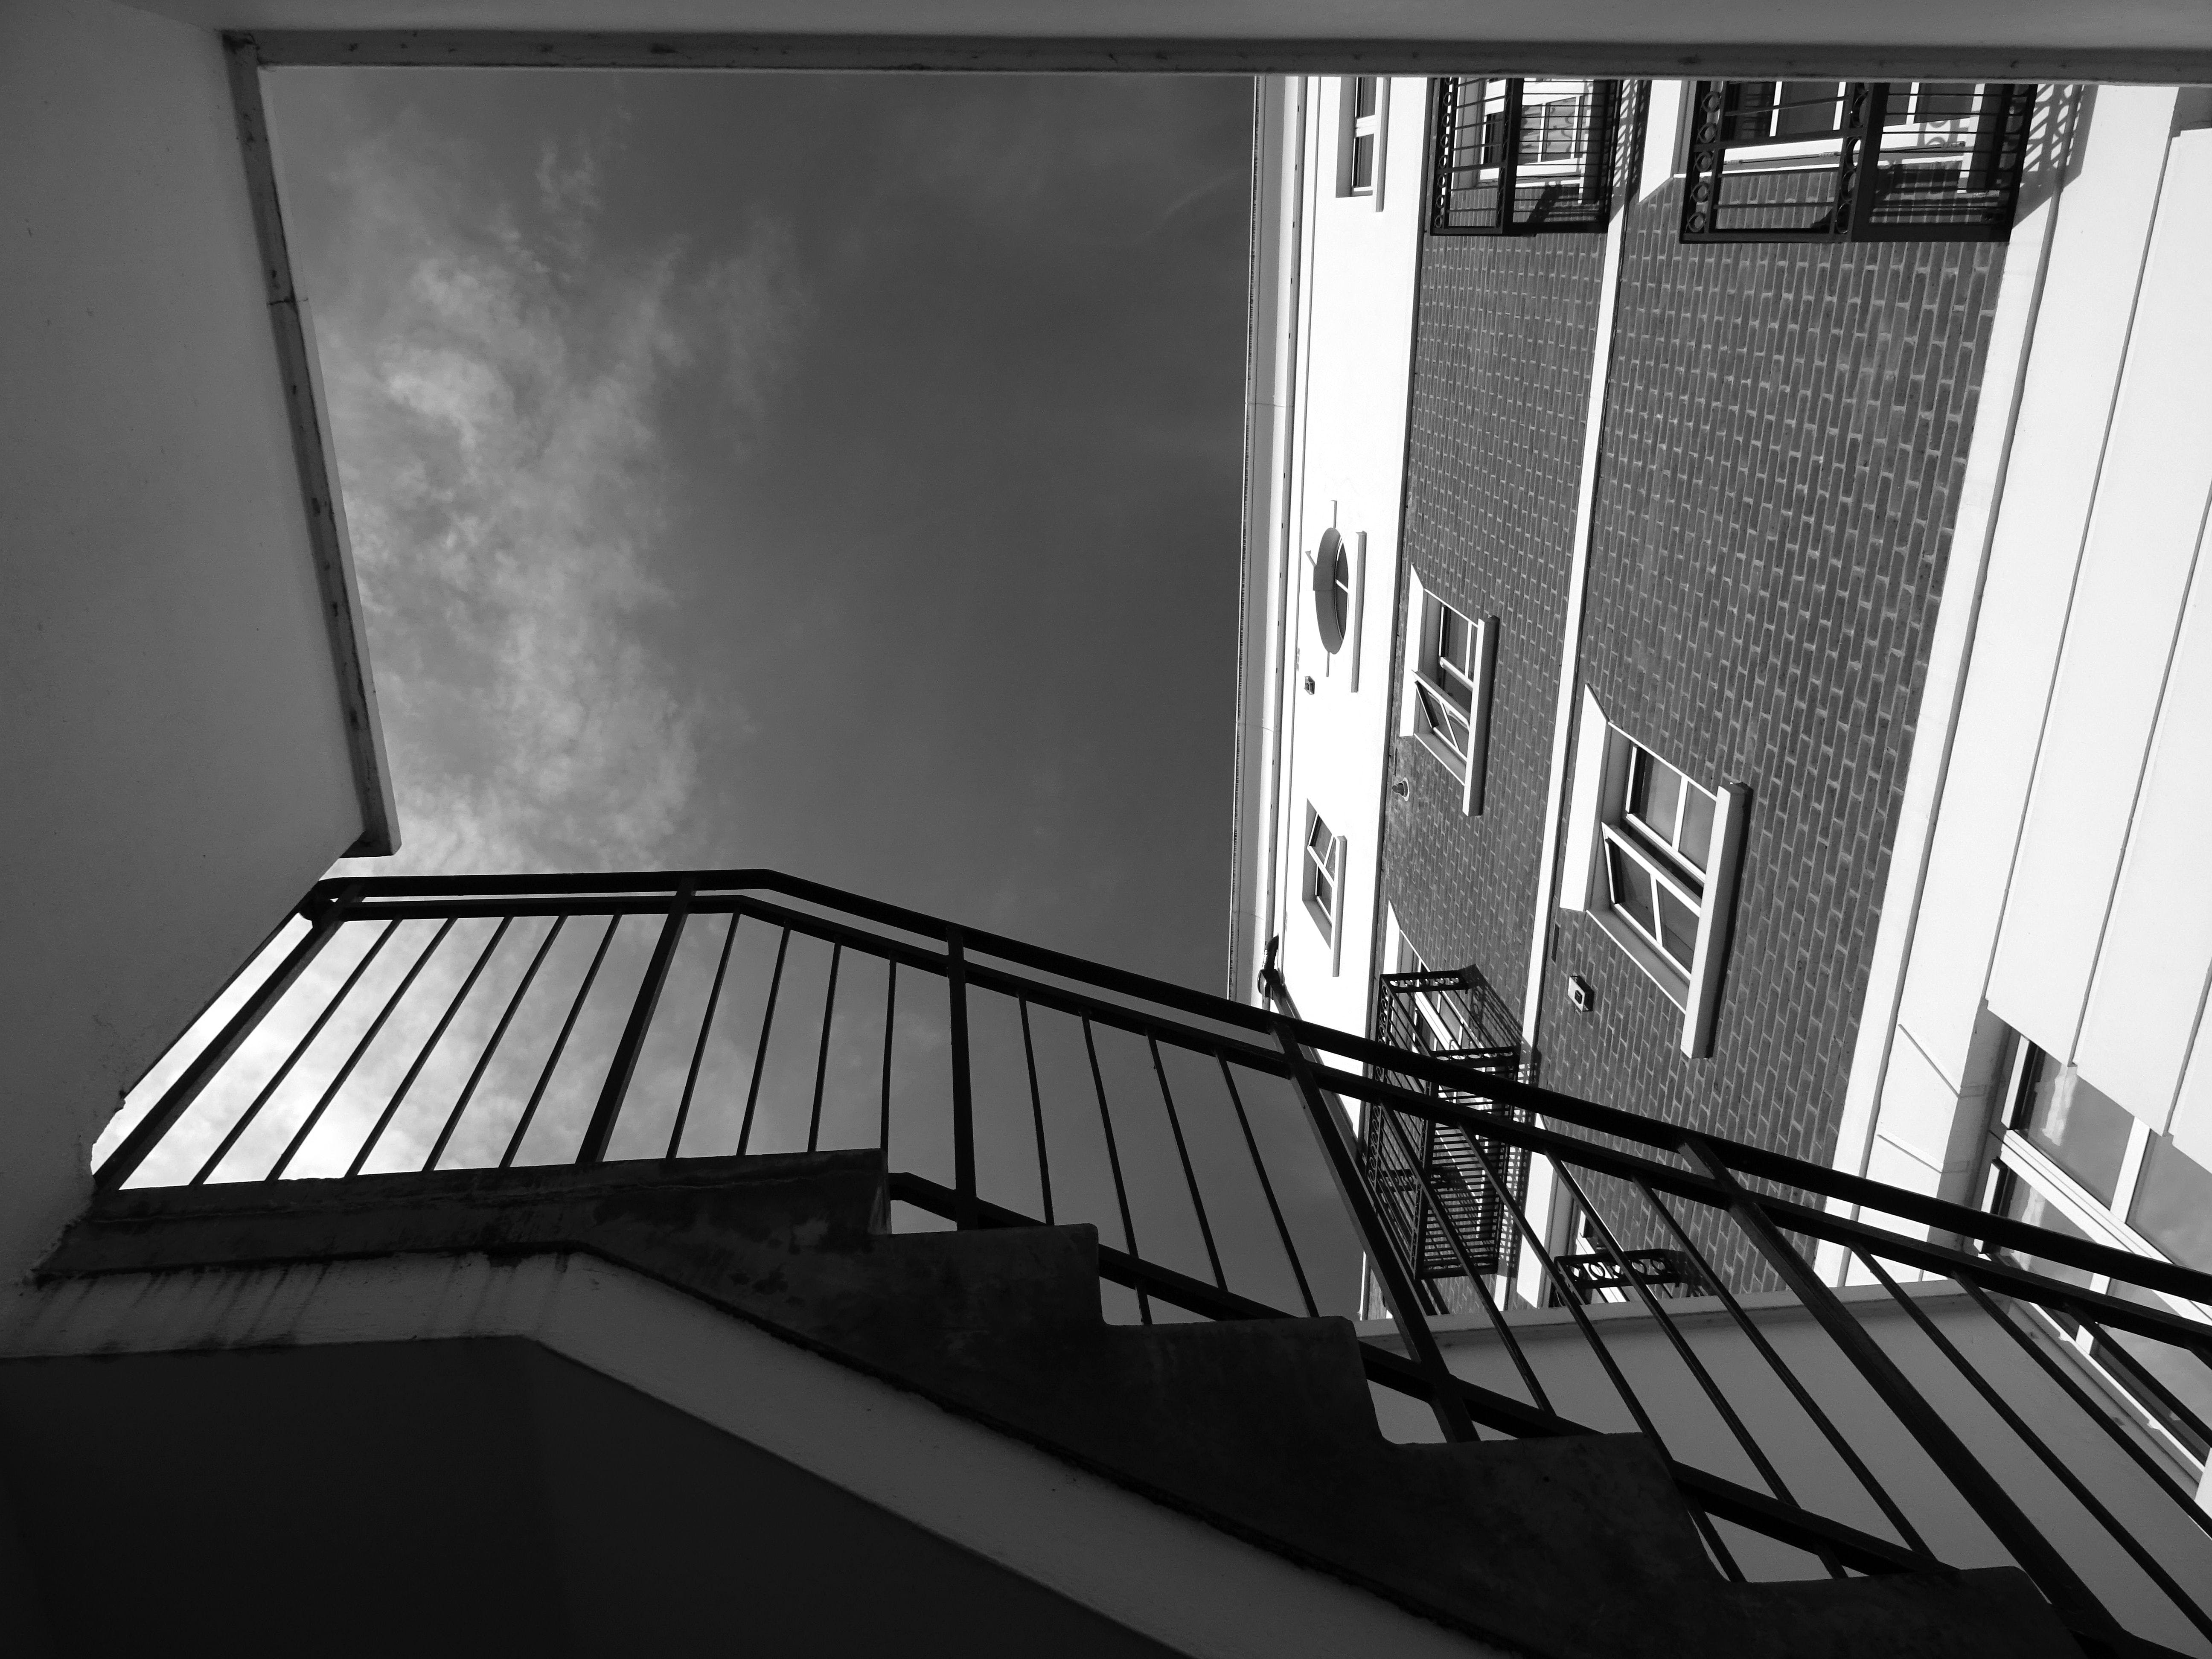 Free stock photo of stairs, black-and-white, sky, building